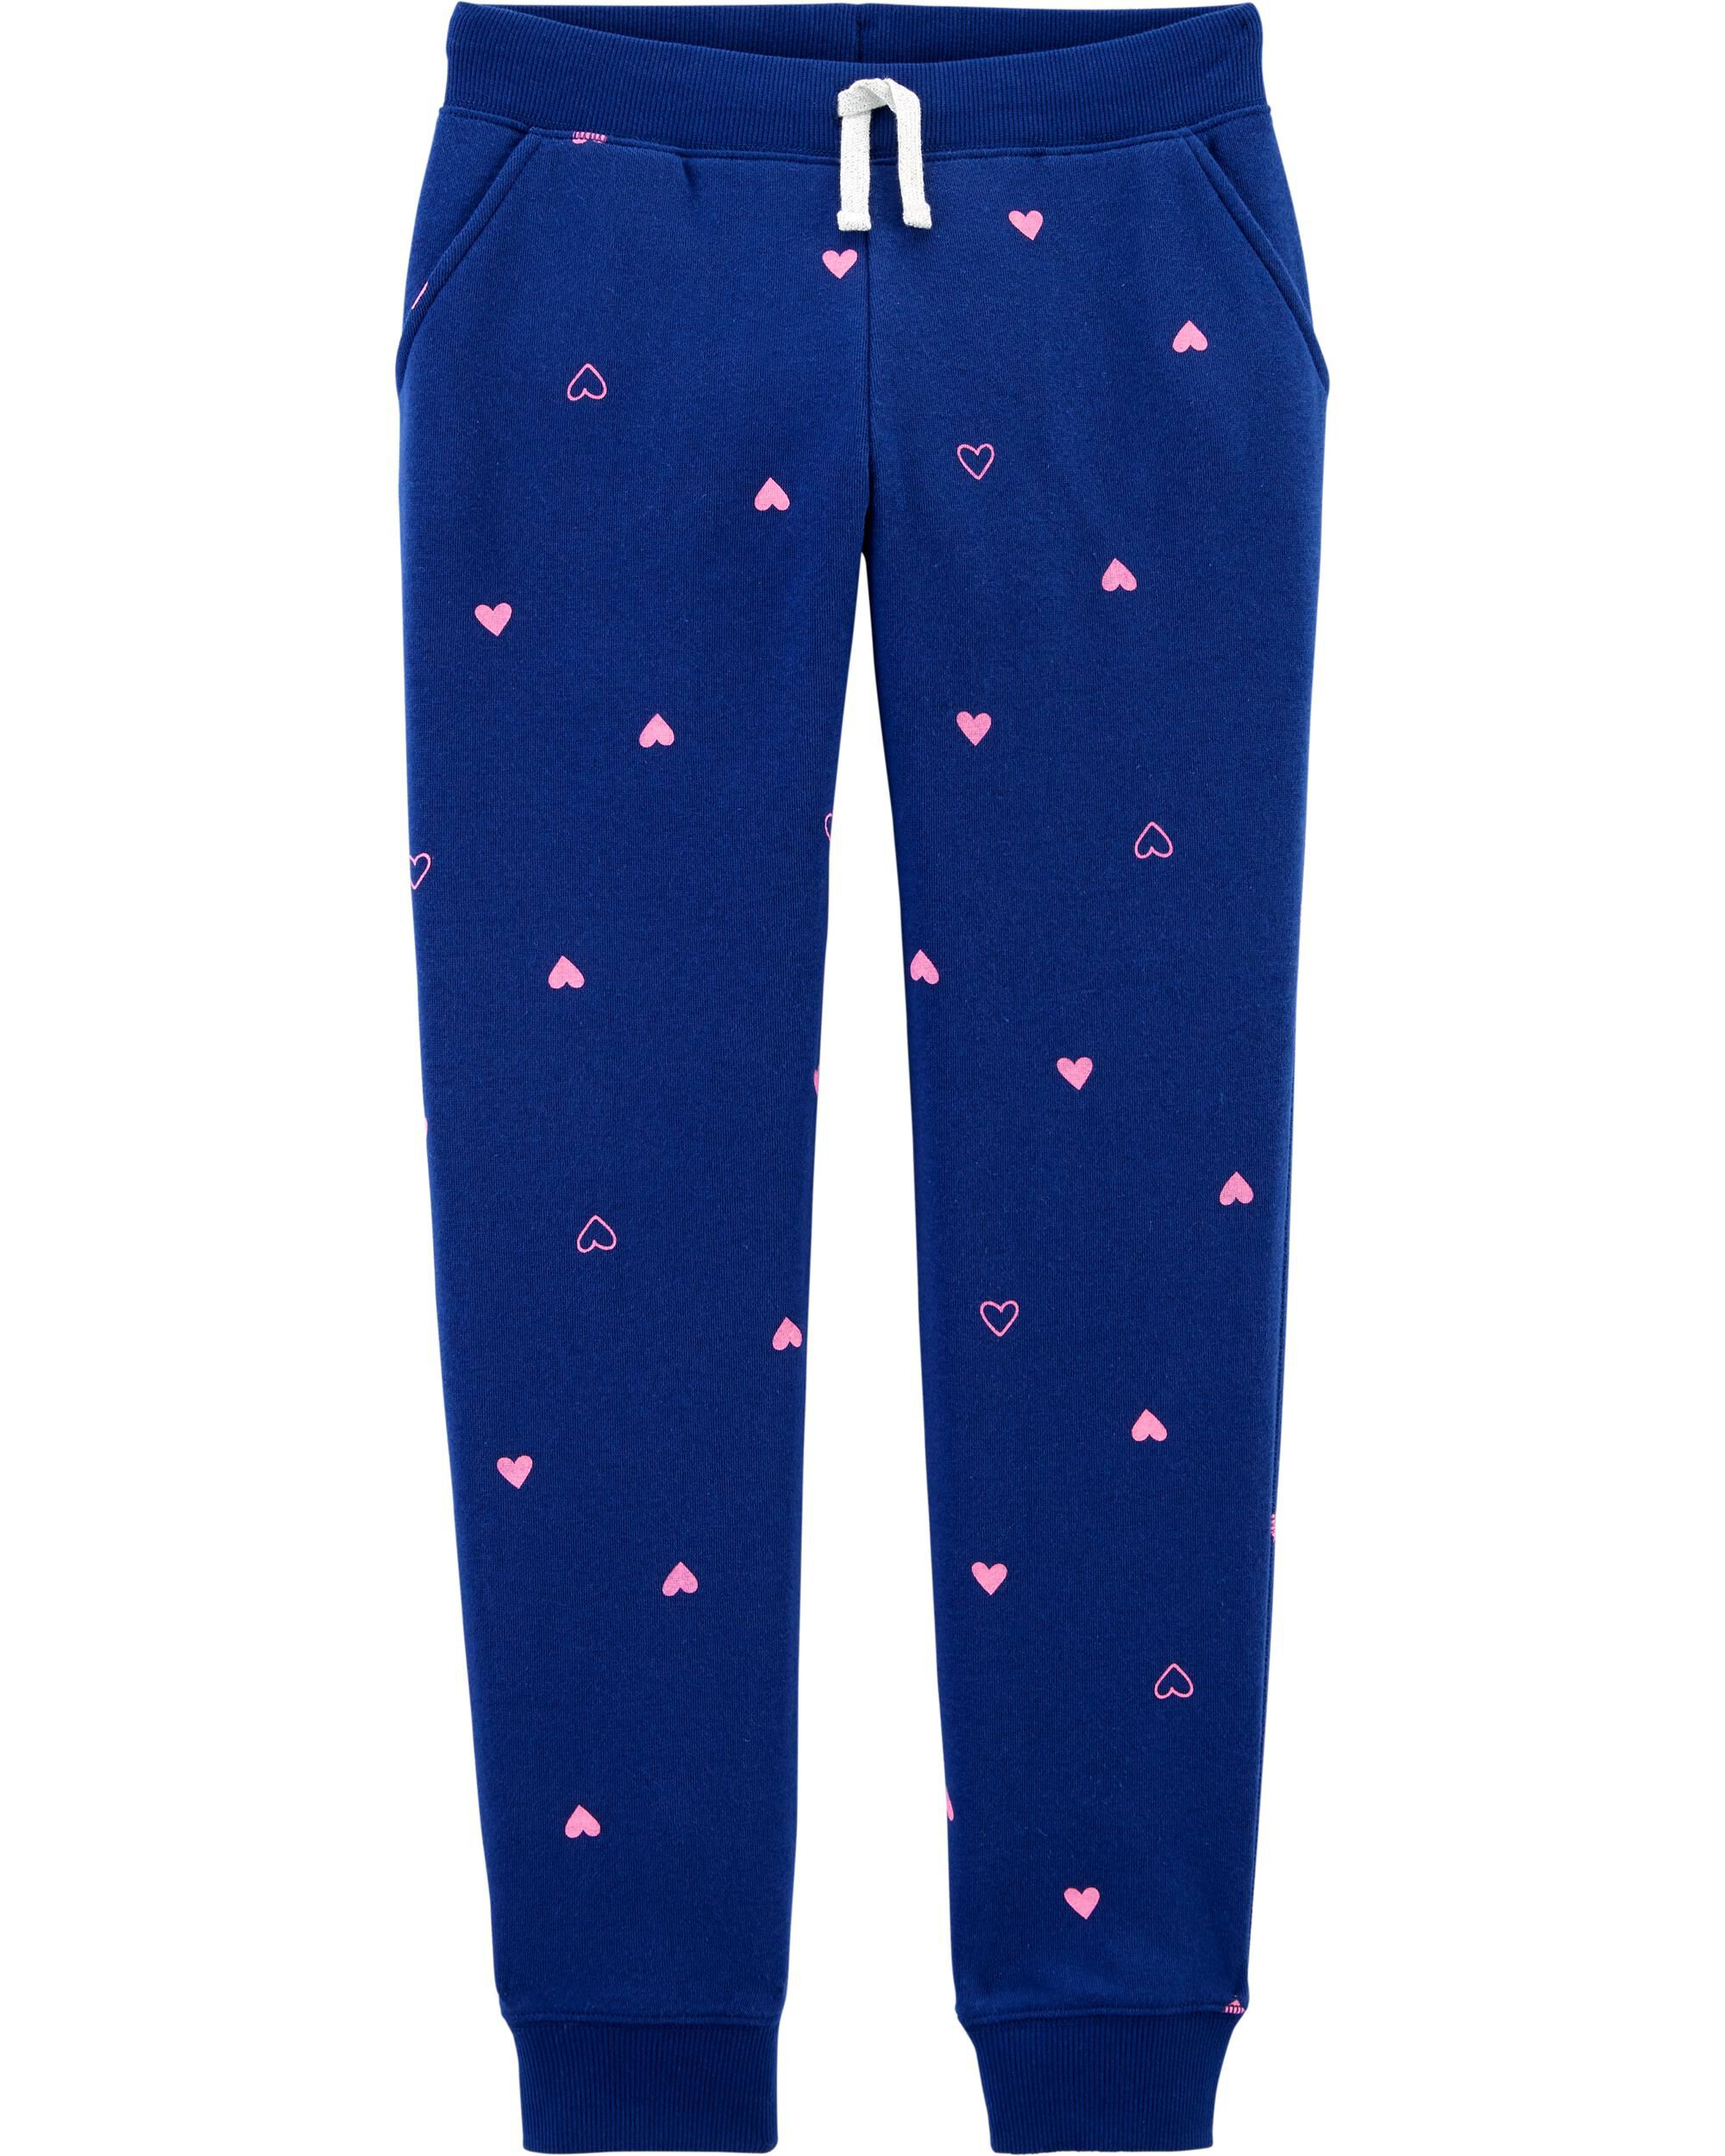 Heart Fleece Pants